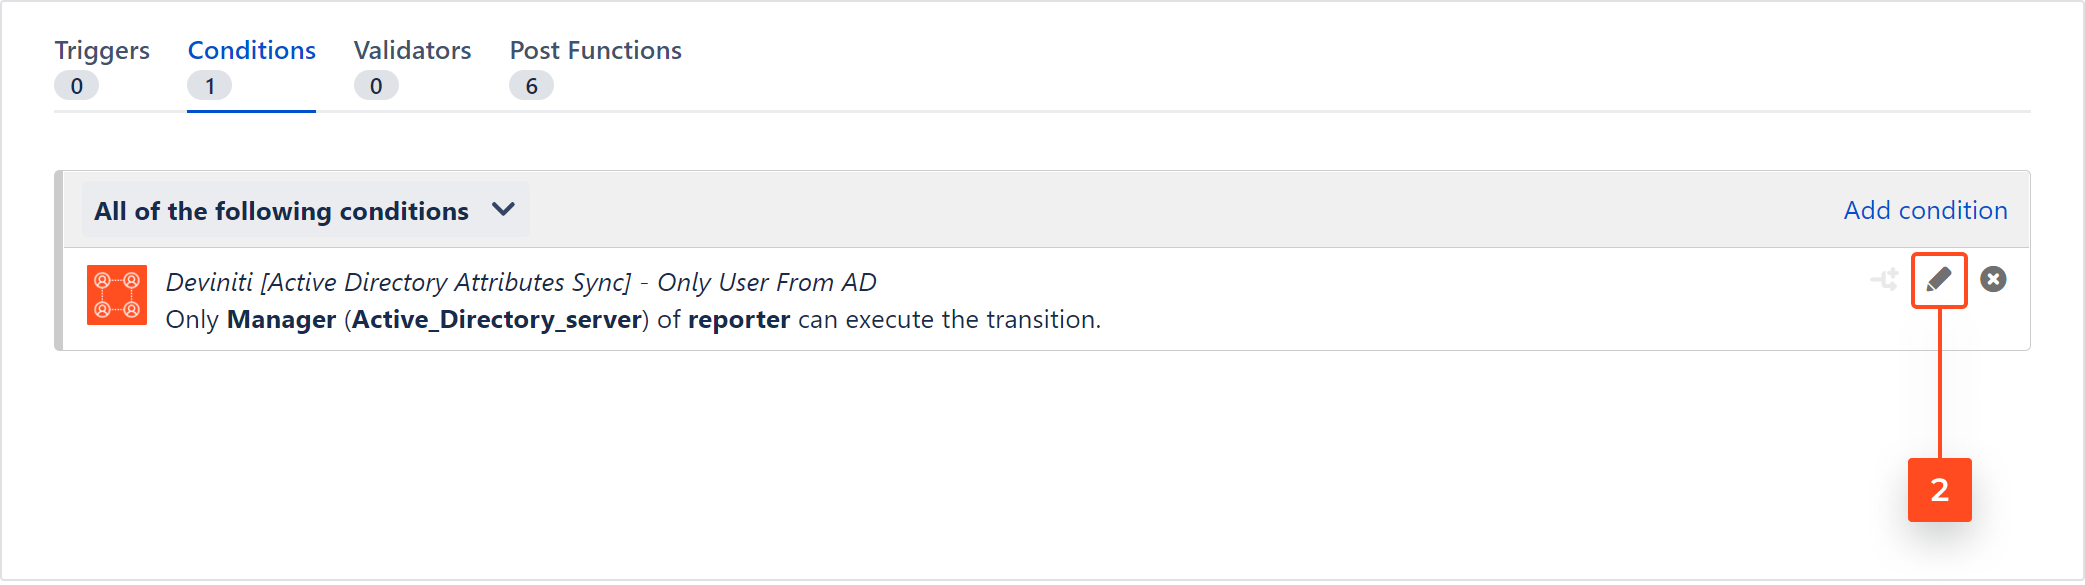 Active Directory Attributes Sync for Jira - Updating the Only User From AD condition